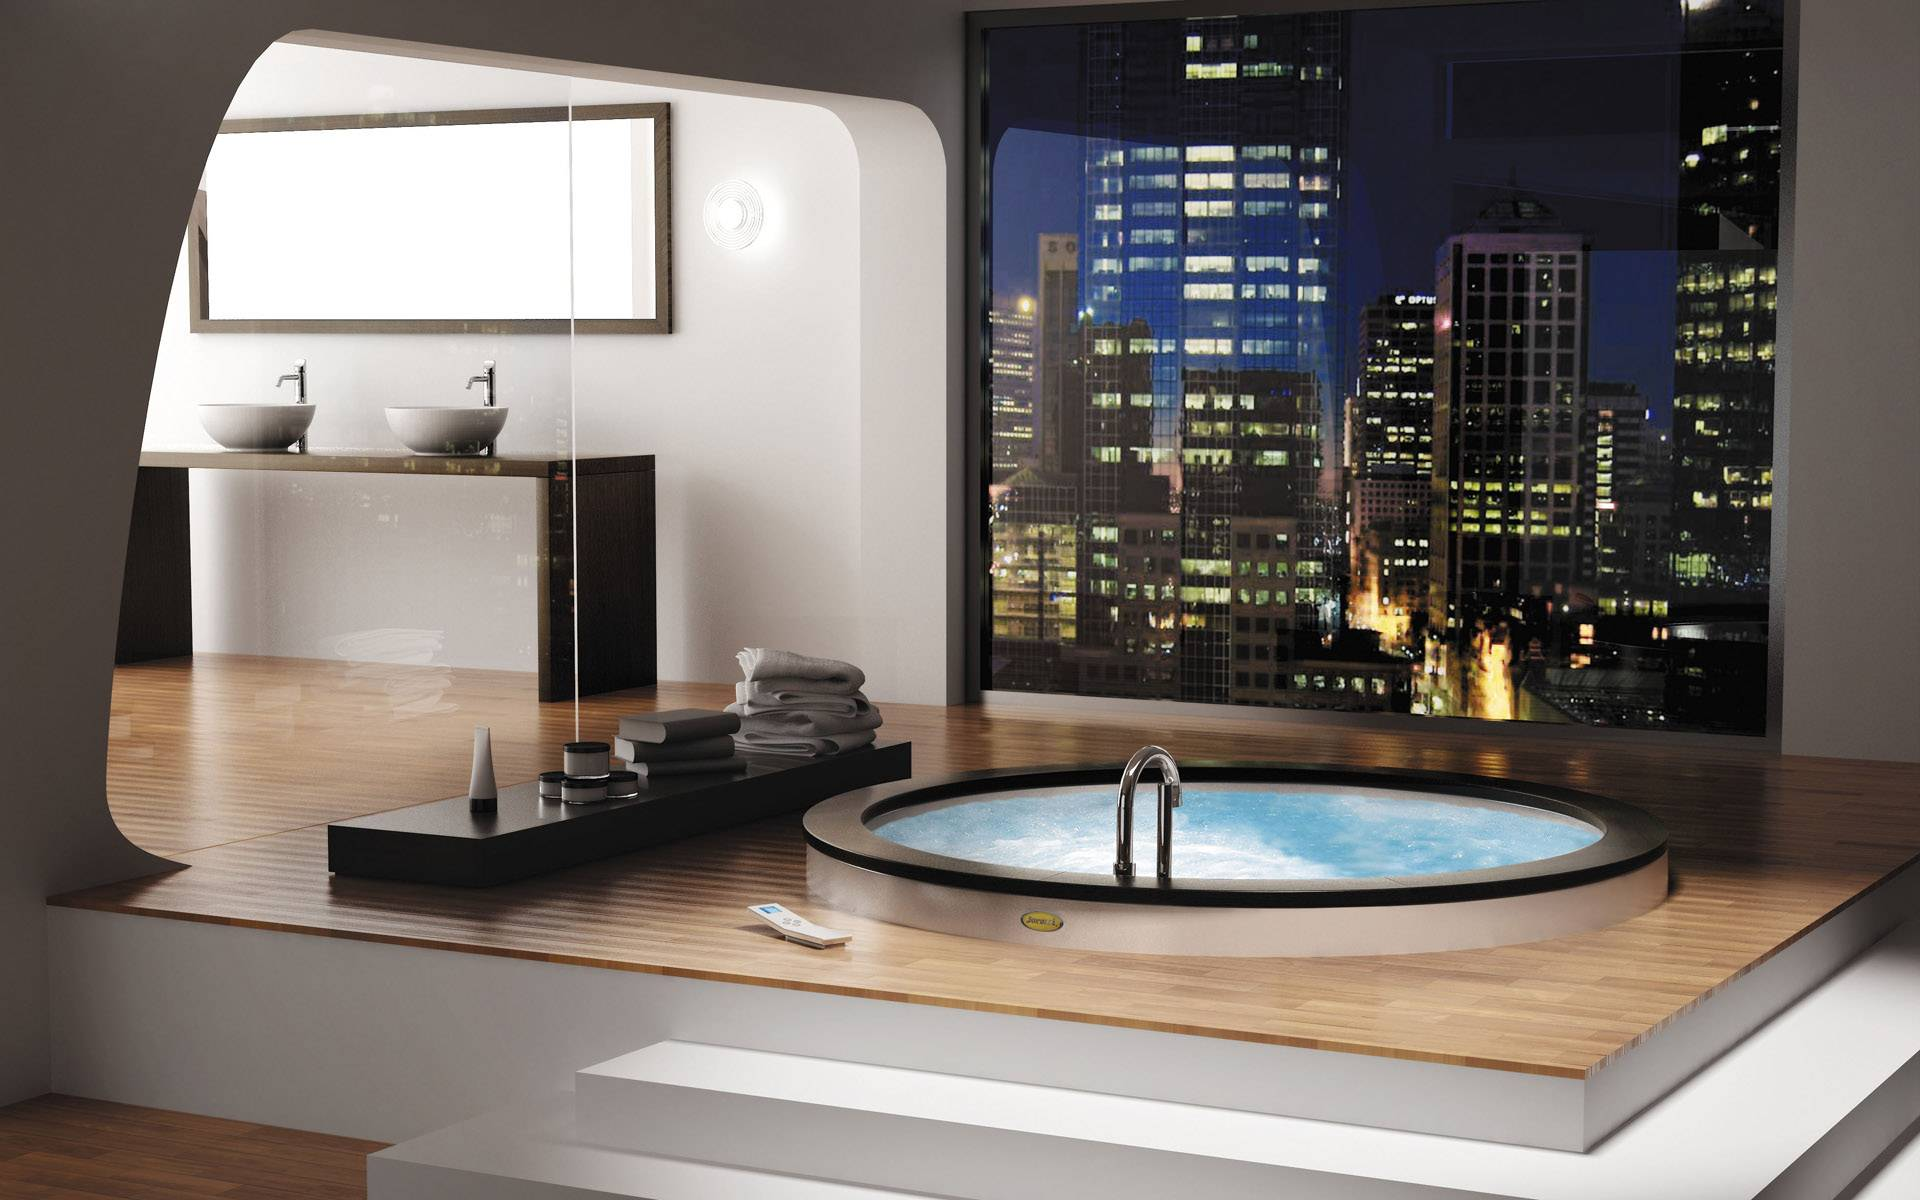 Extraordinary Luxury Bathrooms With High Gloss Finish Washing Stand: Modern Round Bathtub Amazing City View Luxury Bathrooms Design